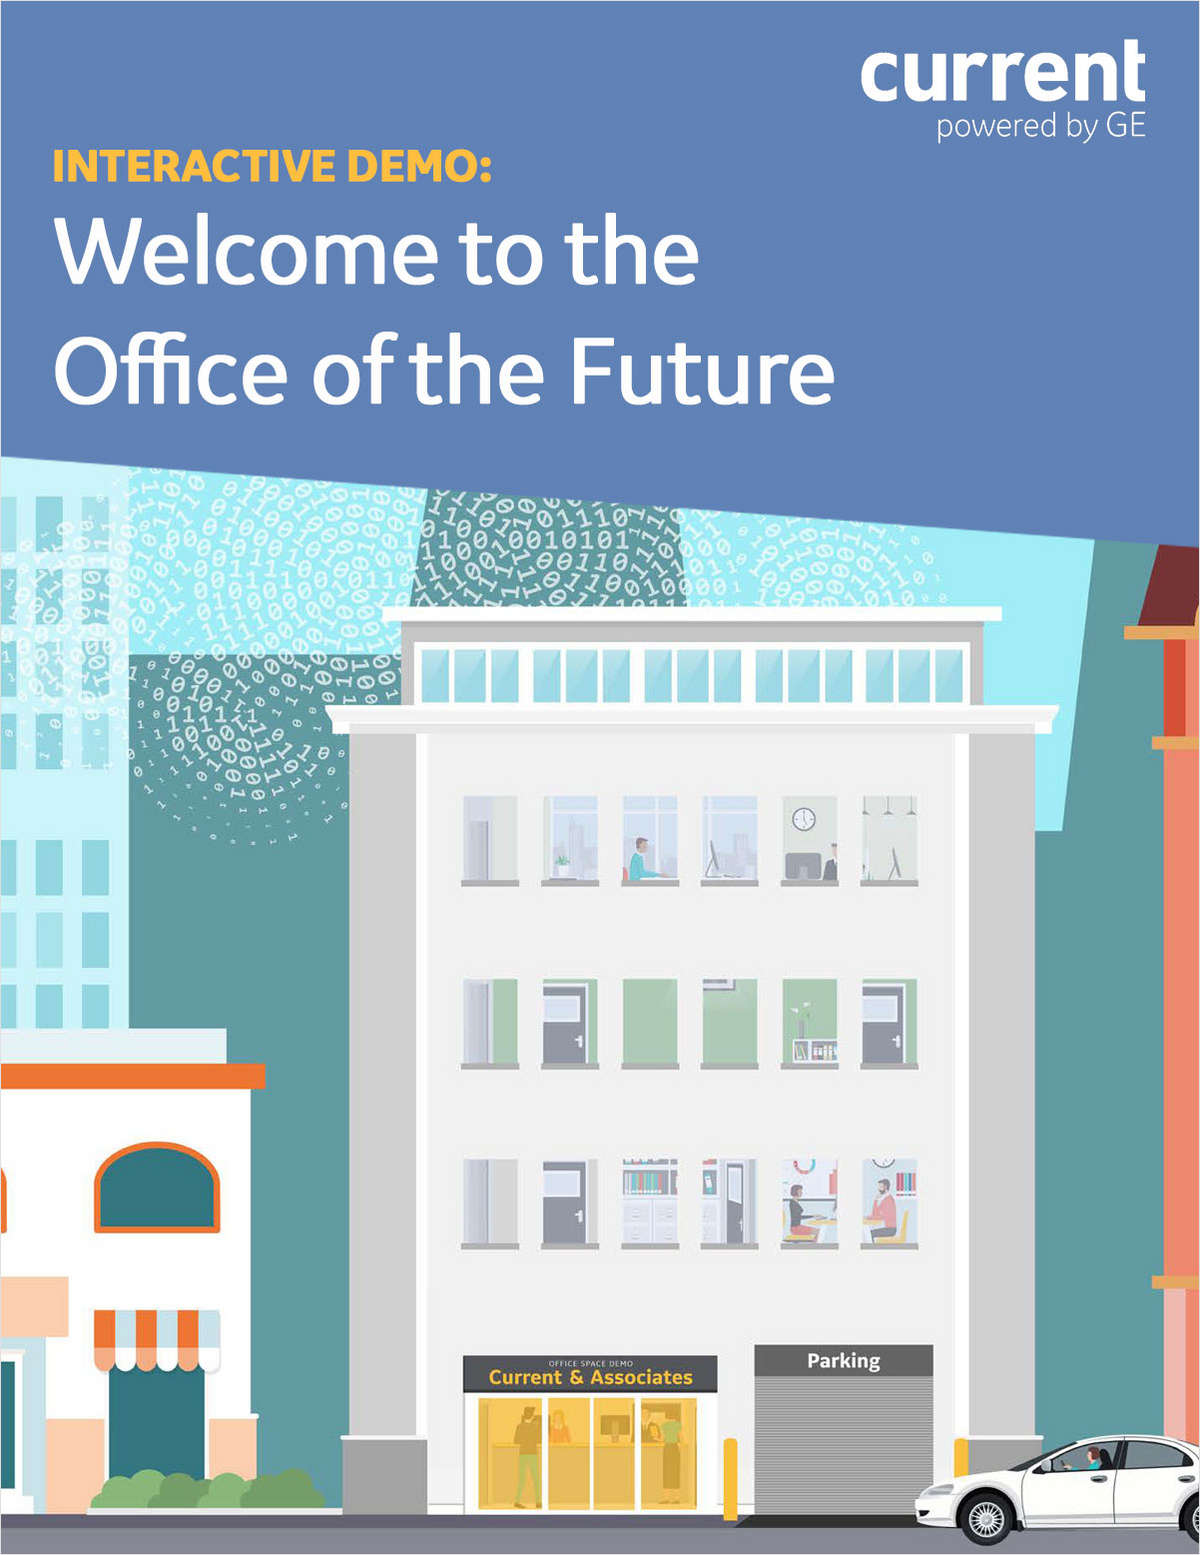 Interactive Demo: Welcome to the Office of the Future